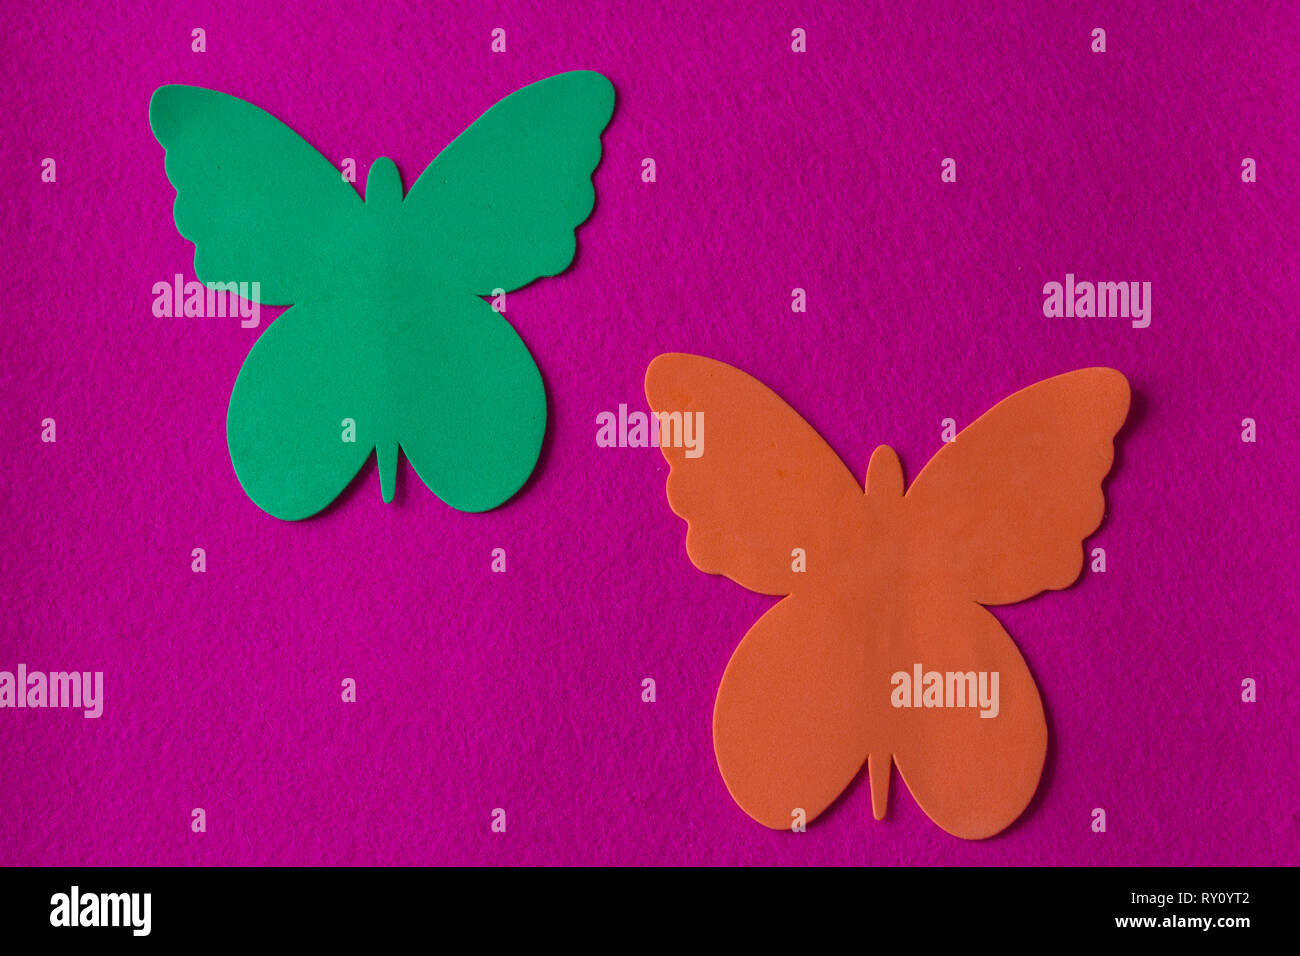 Green and orange butterflies made of soft material on a fuchsia rag background - Stock Image